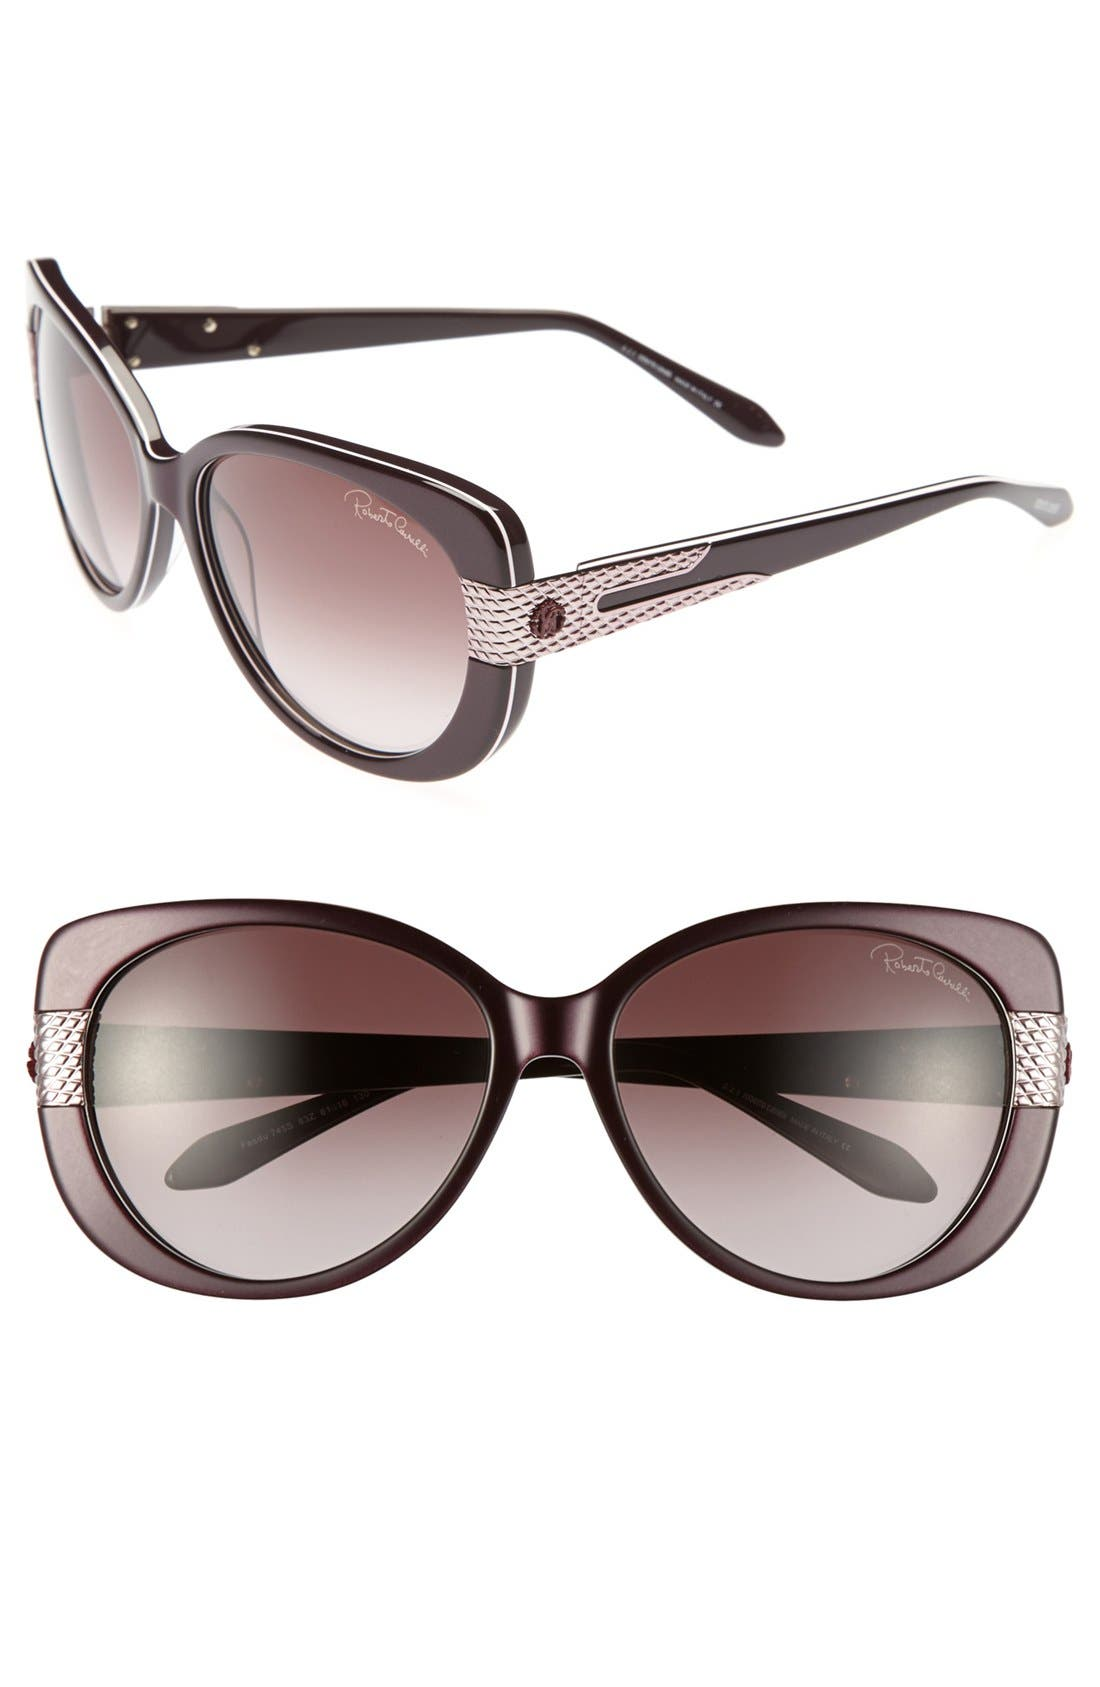 Alternate Image 1 Selected - Roberto Cavalli 'Fesdu' 61mm Sunglasses